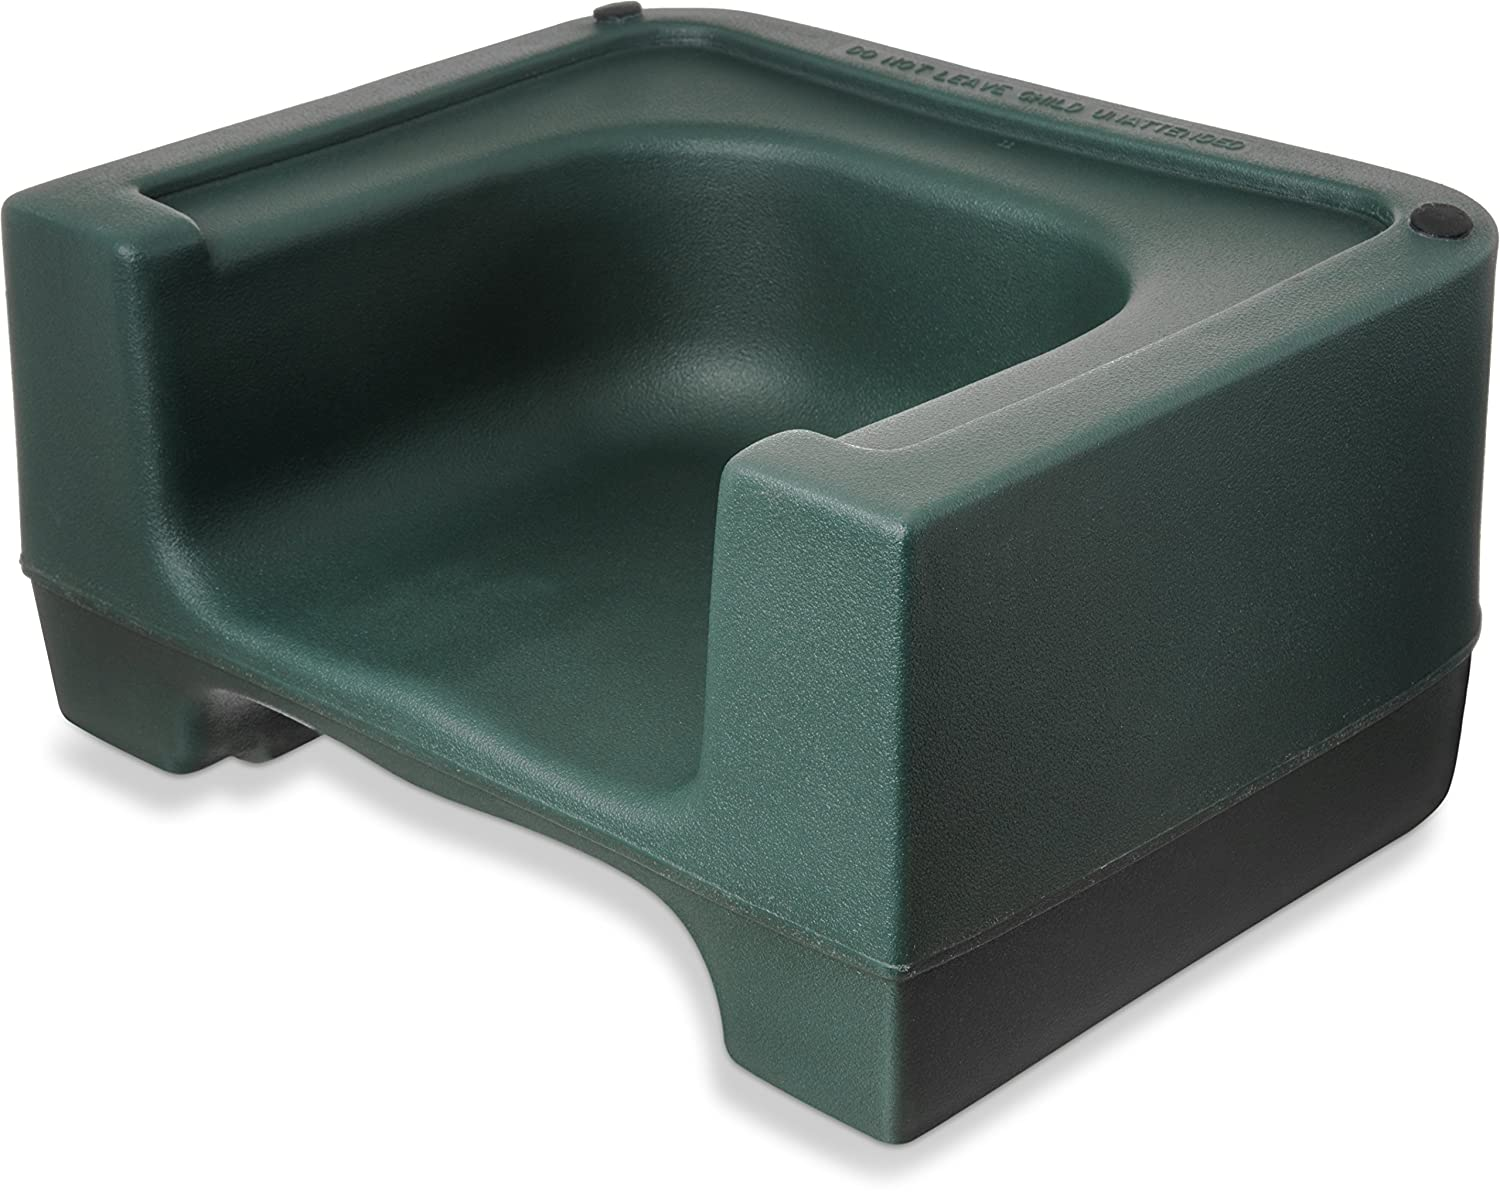 Carlisle 711008 Plastic Dual Seat Restaurant-Style Booster Chair, Forest Green 711008-E